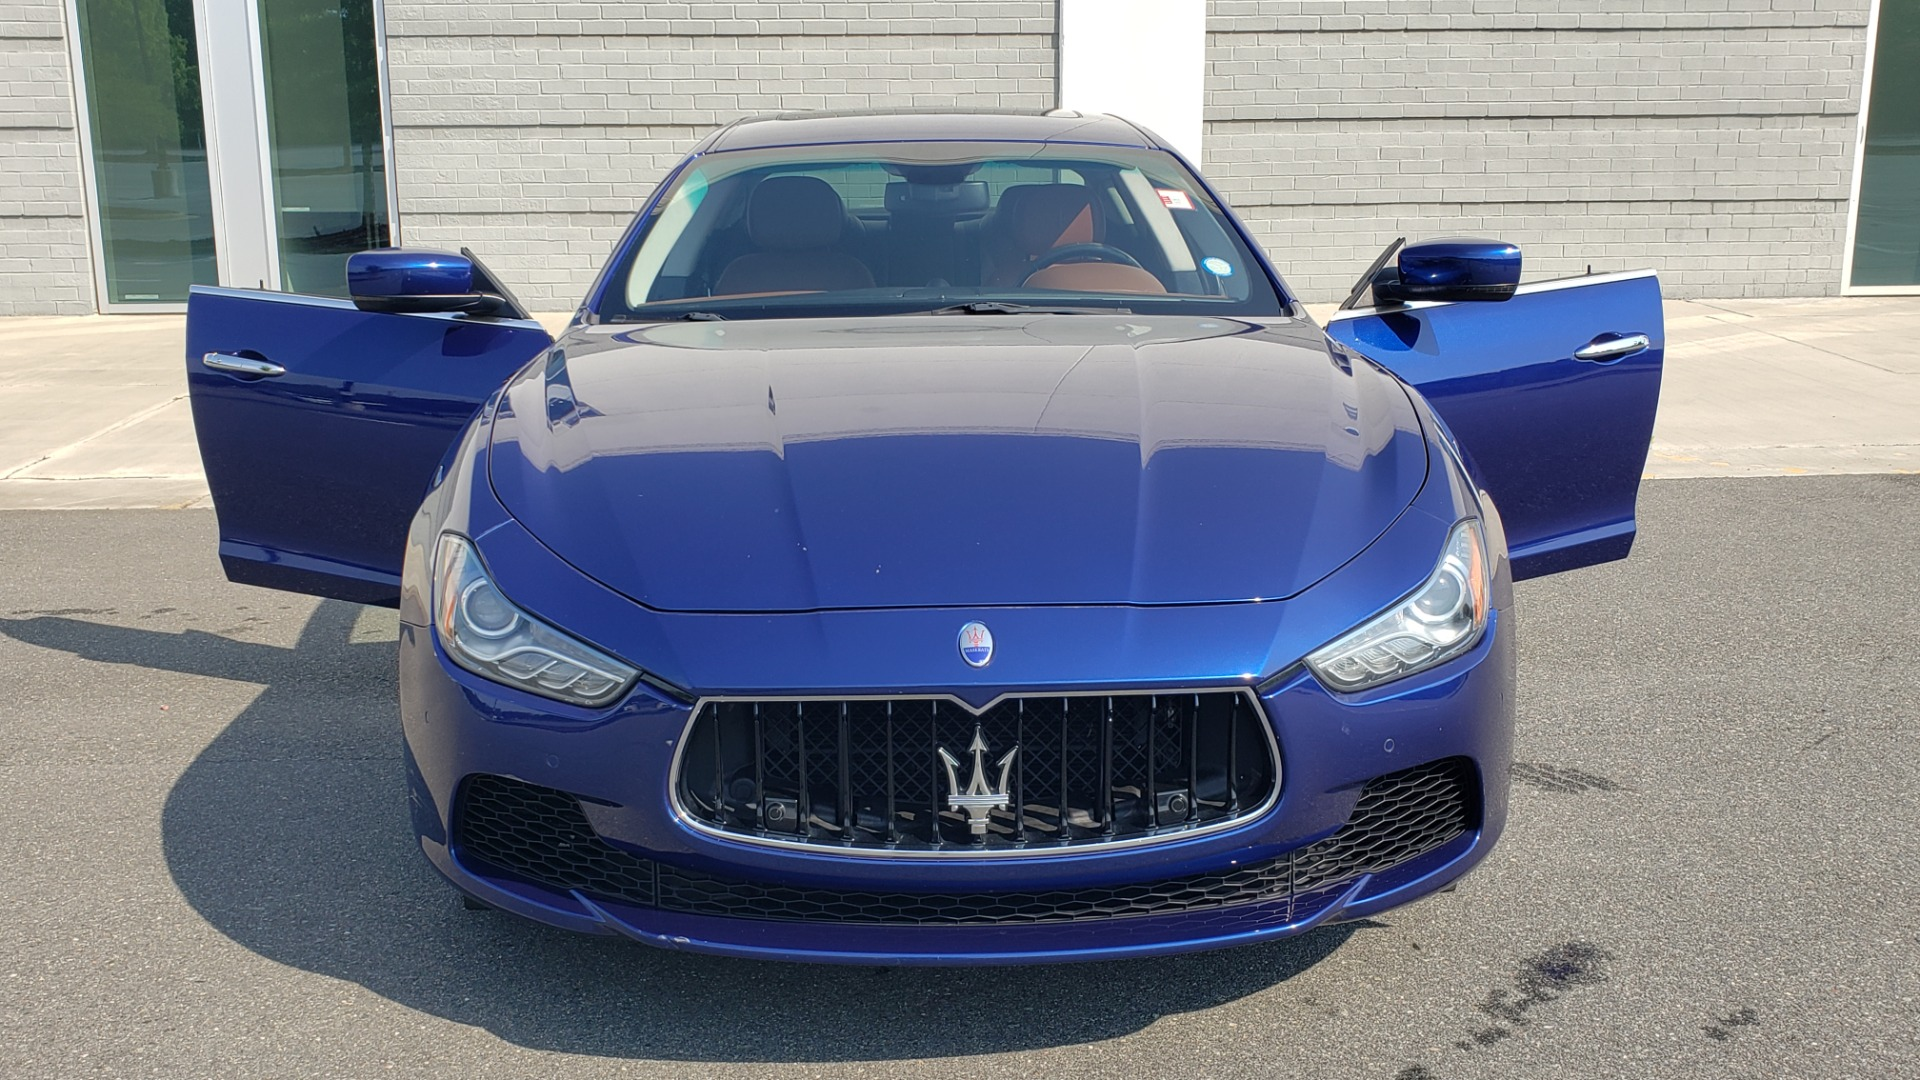 Used 2015 Maserati GHIBLI SEDAN / 3.0L V6 / 8-SPD AUTO / NAV / HTD STS / SUNROOF / REARVIEW for sale $24,495 at Formula Imports in Charlotte NC 28227 22